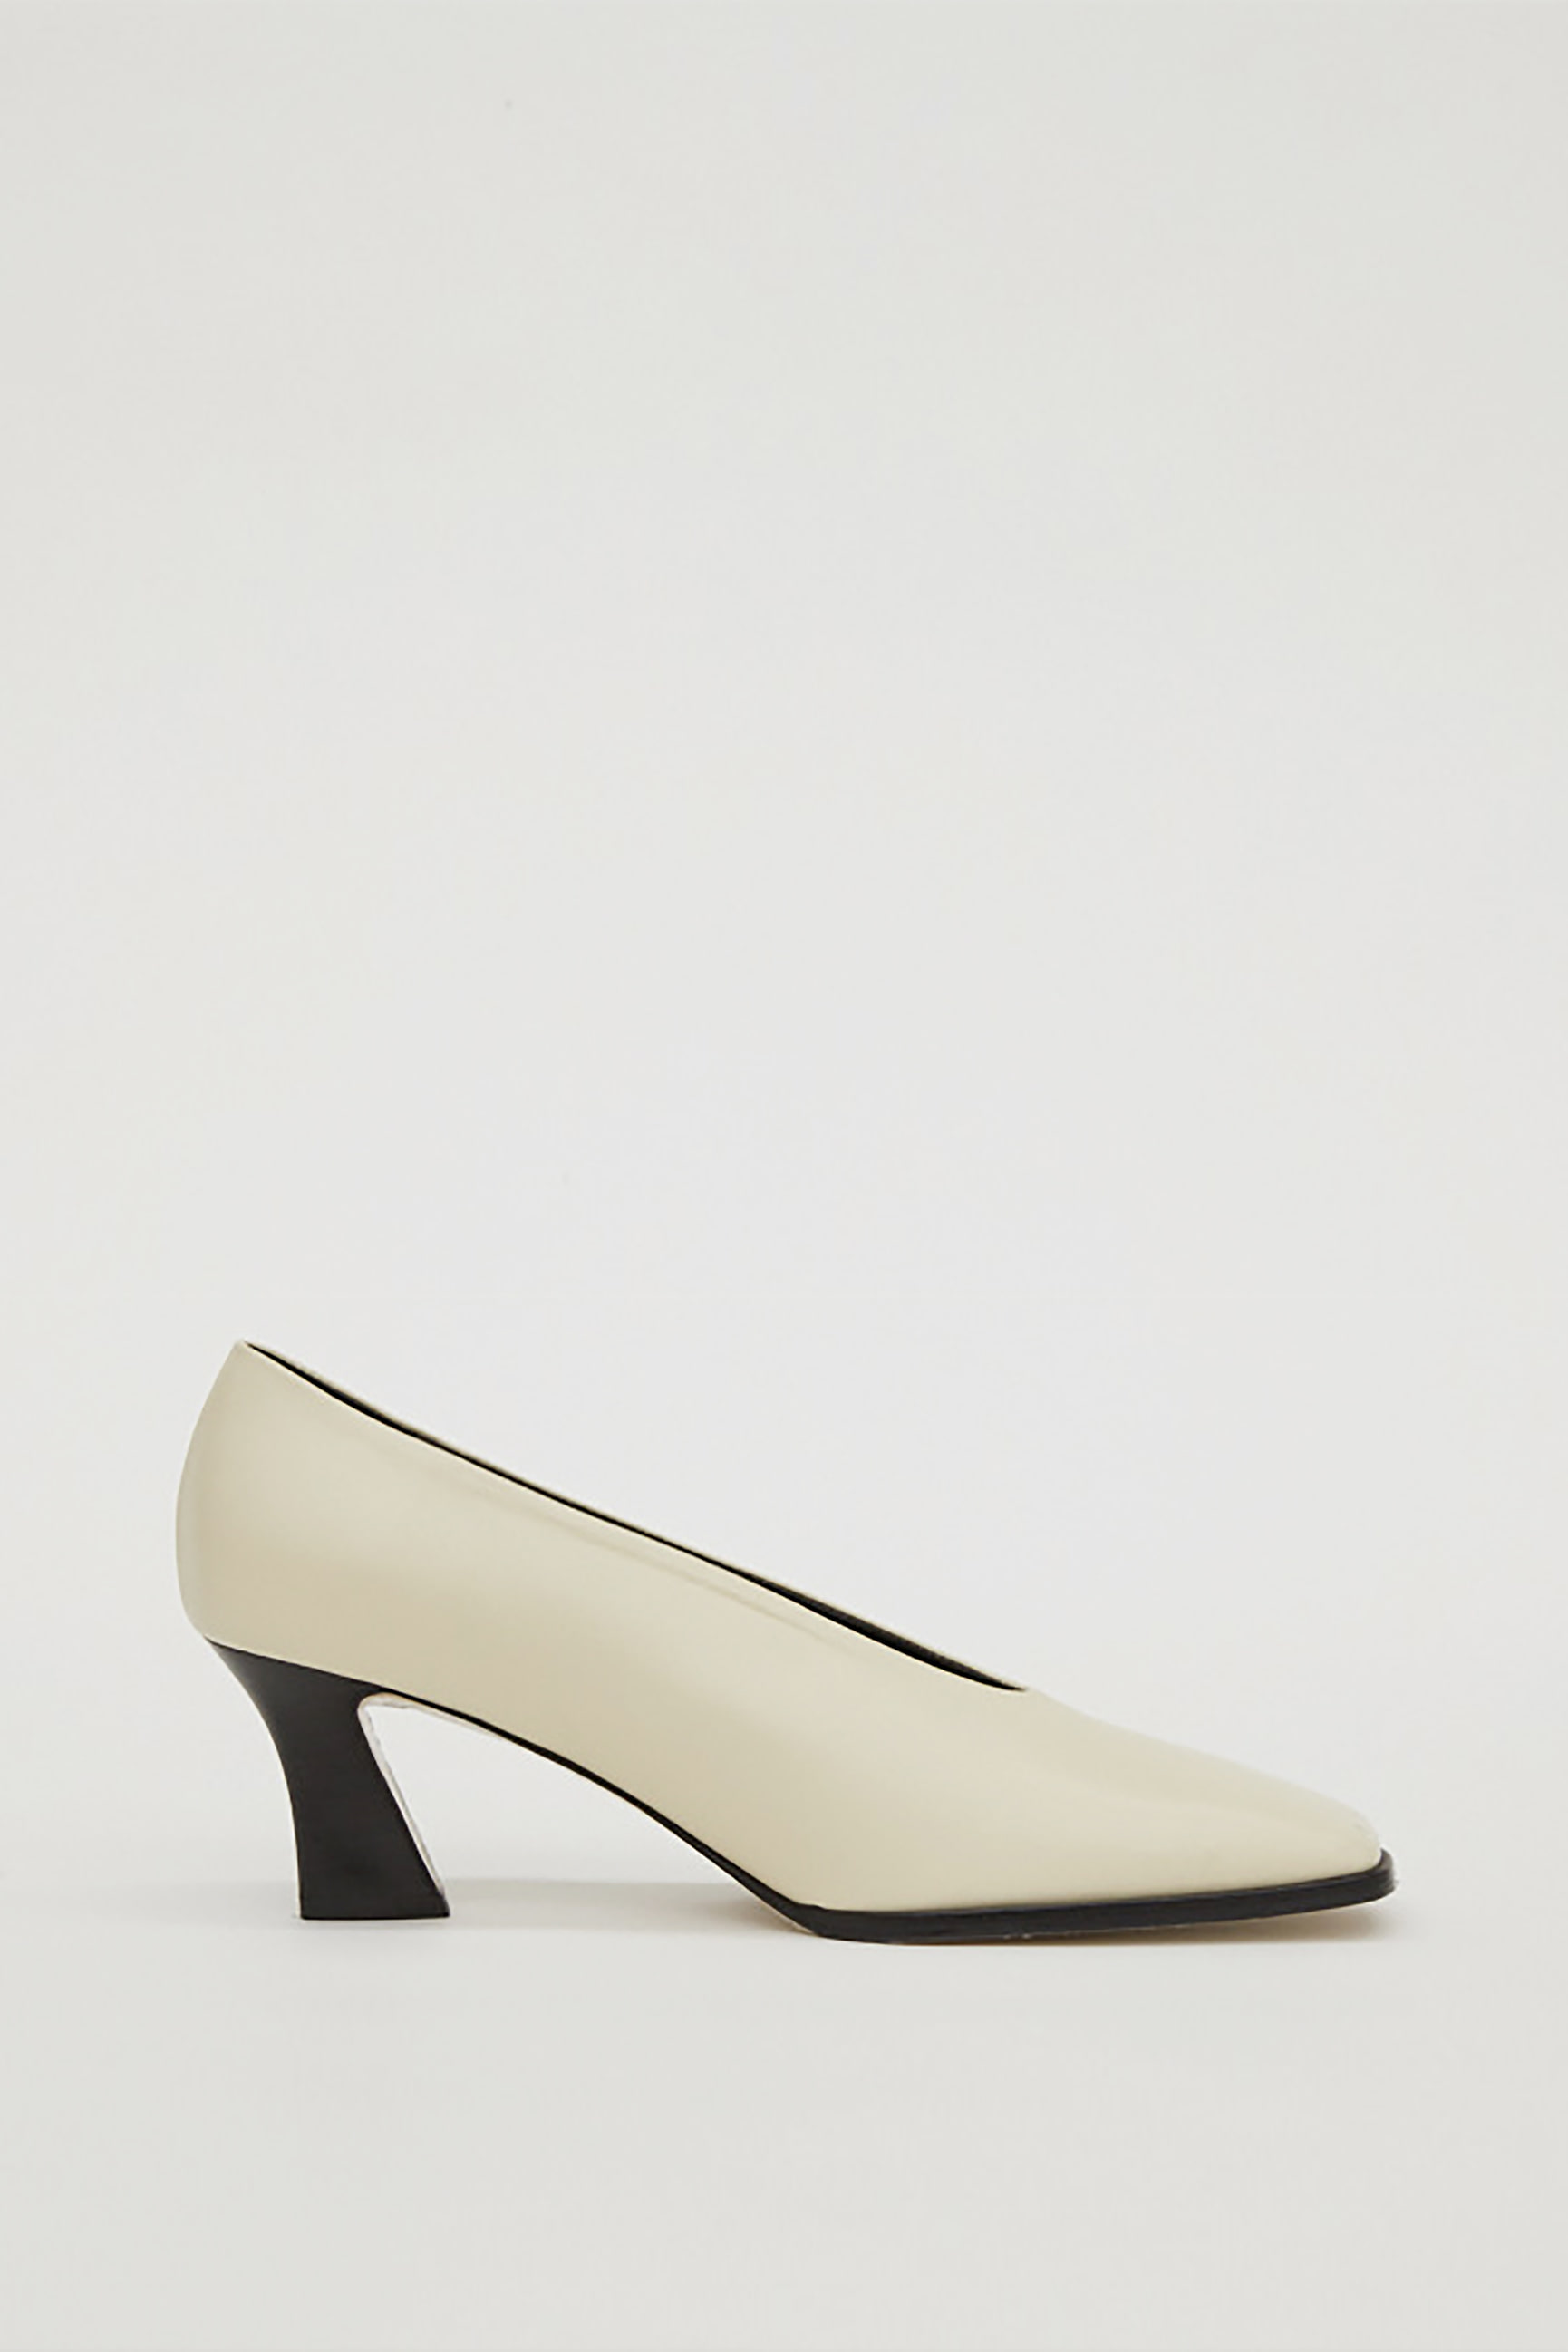 SQUARE LEATHER PUMPS_CREAM